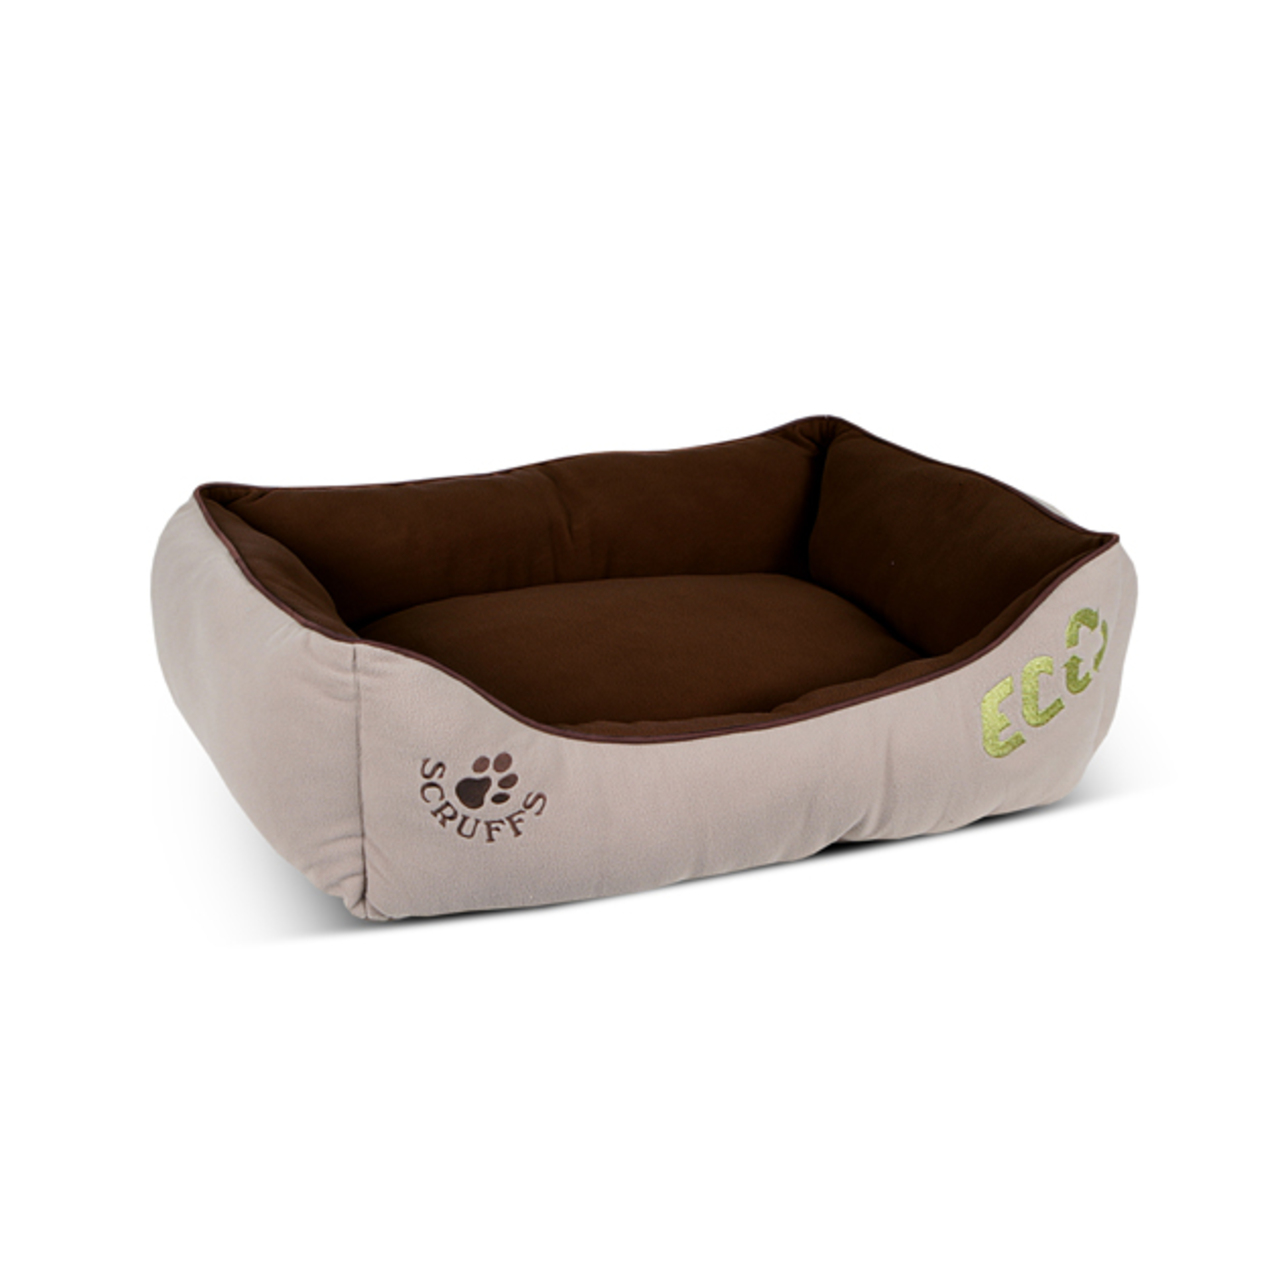 An image of Scruffs Eco Box Bed Med